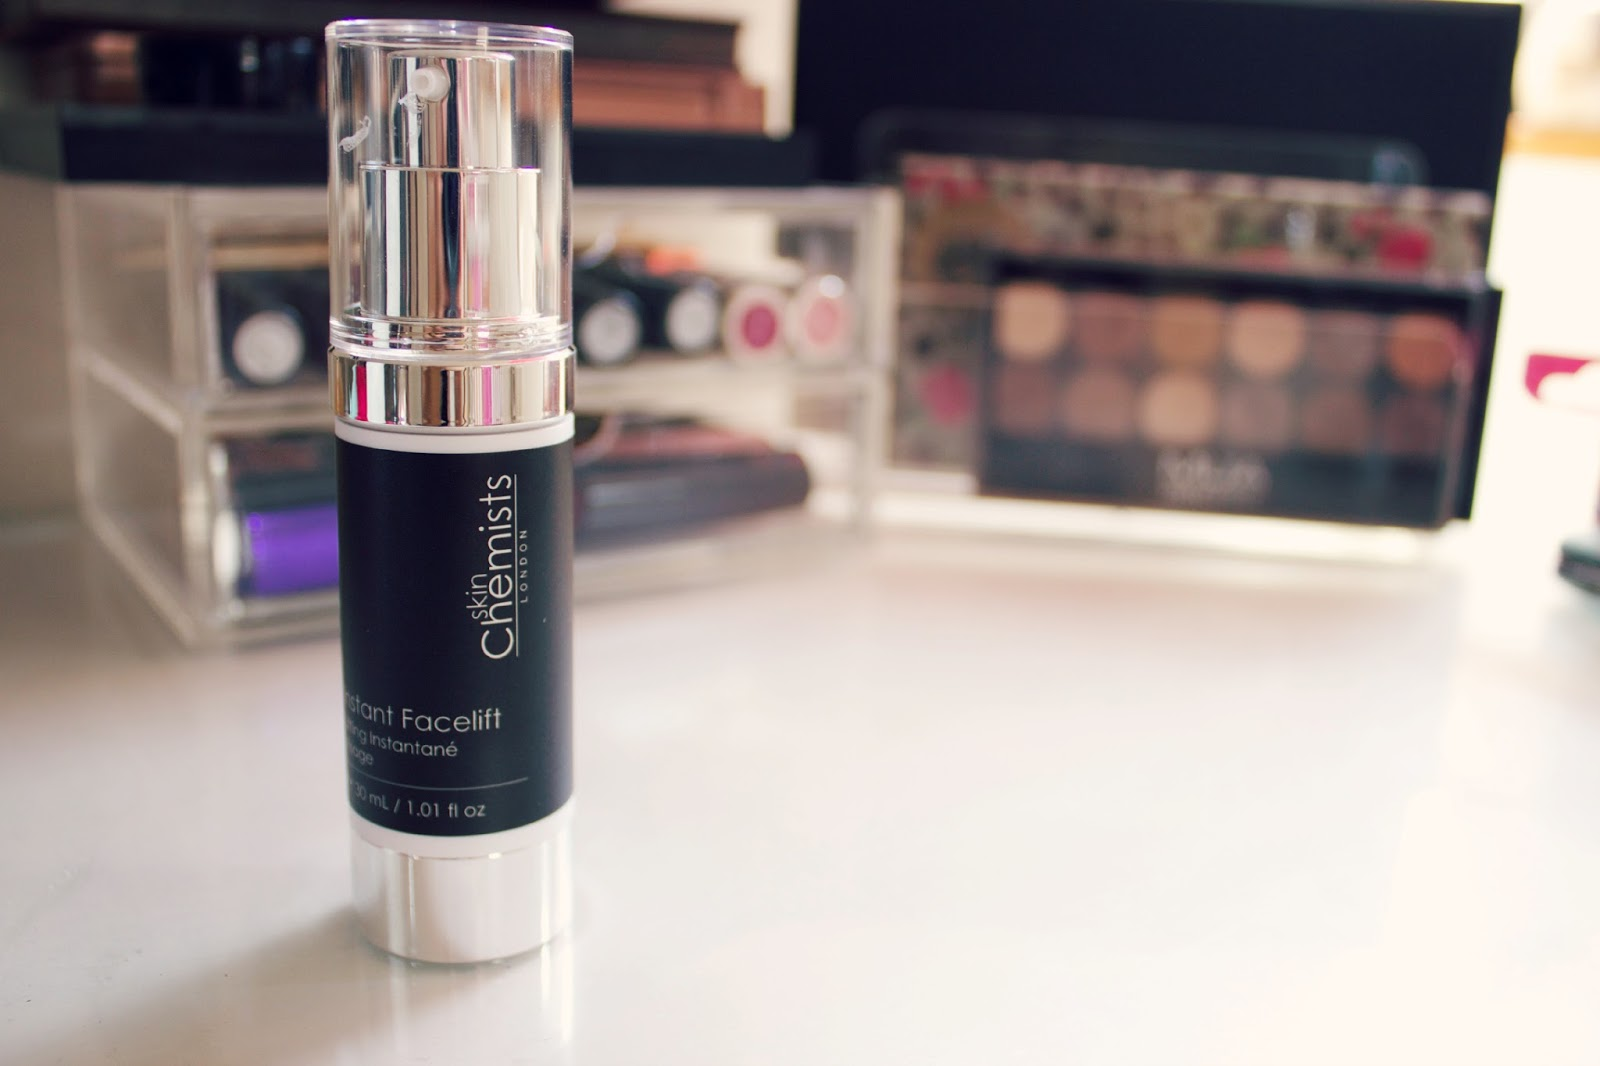 Skin Chemists Instant Facelift Guest Post By My Mum! | Live Laugh